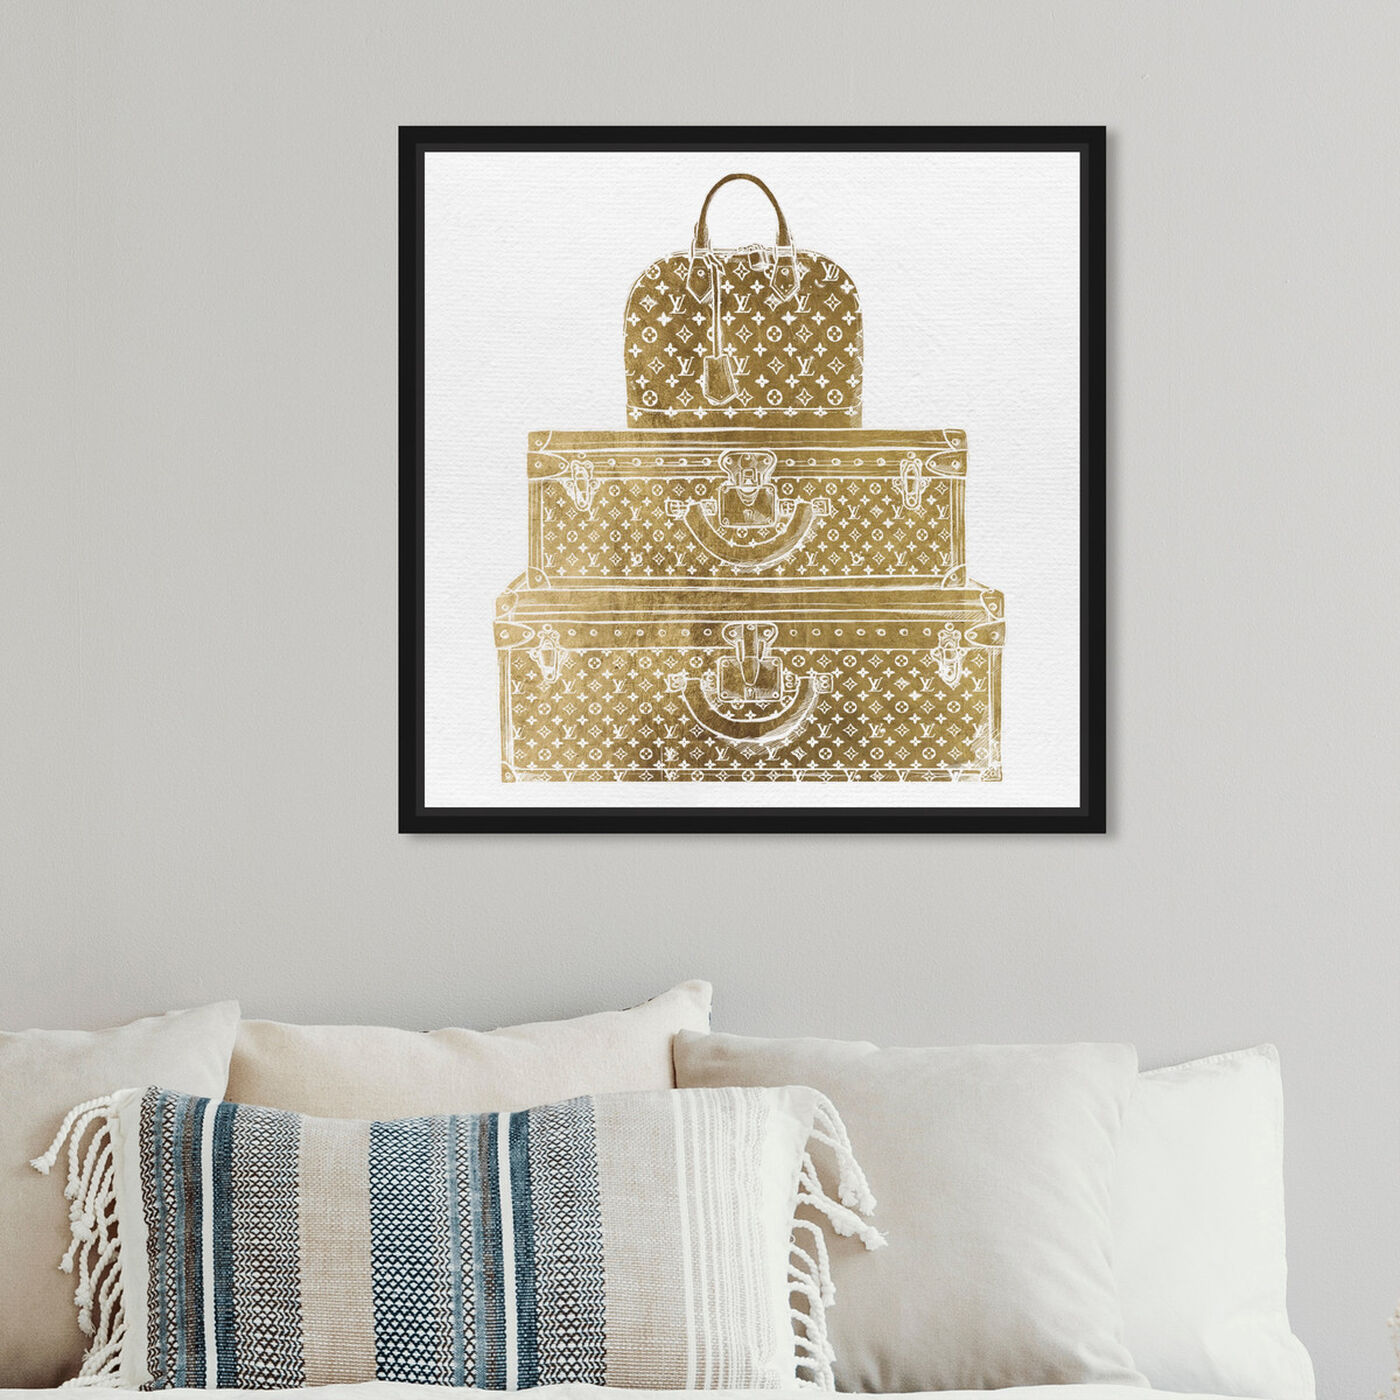 Hanging view of Royal Bag and Luggage Gold featuring fashion and glam and travel essentials art.